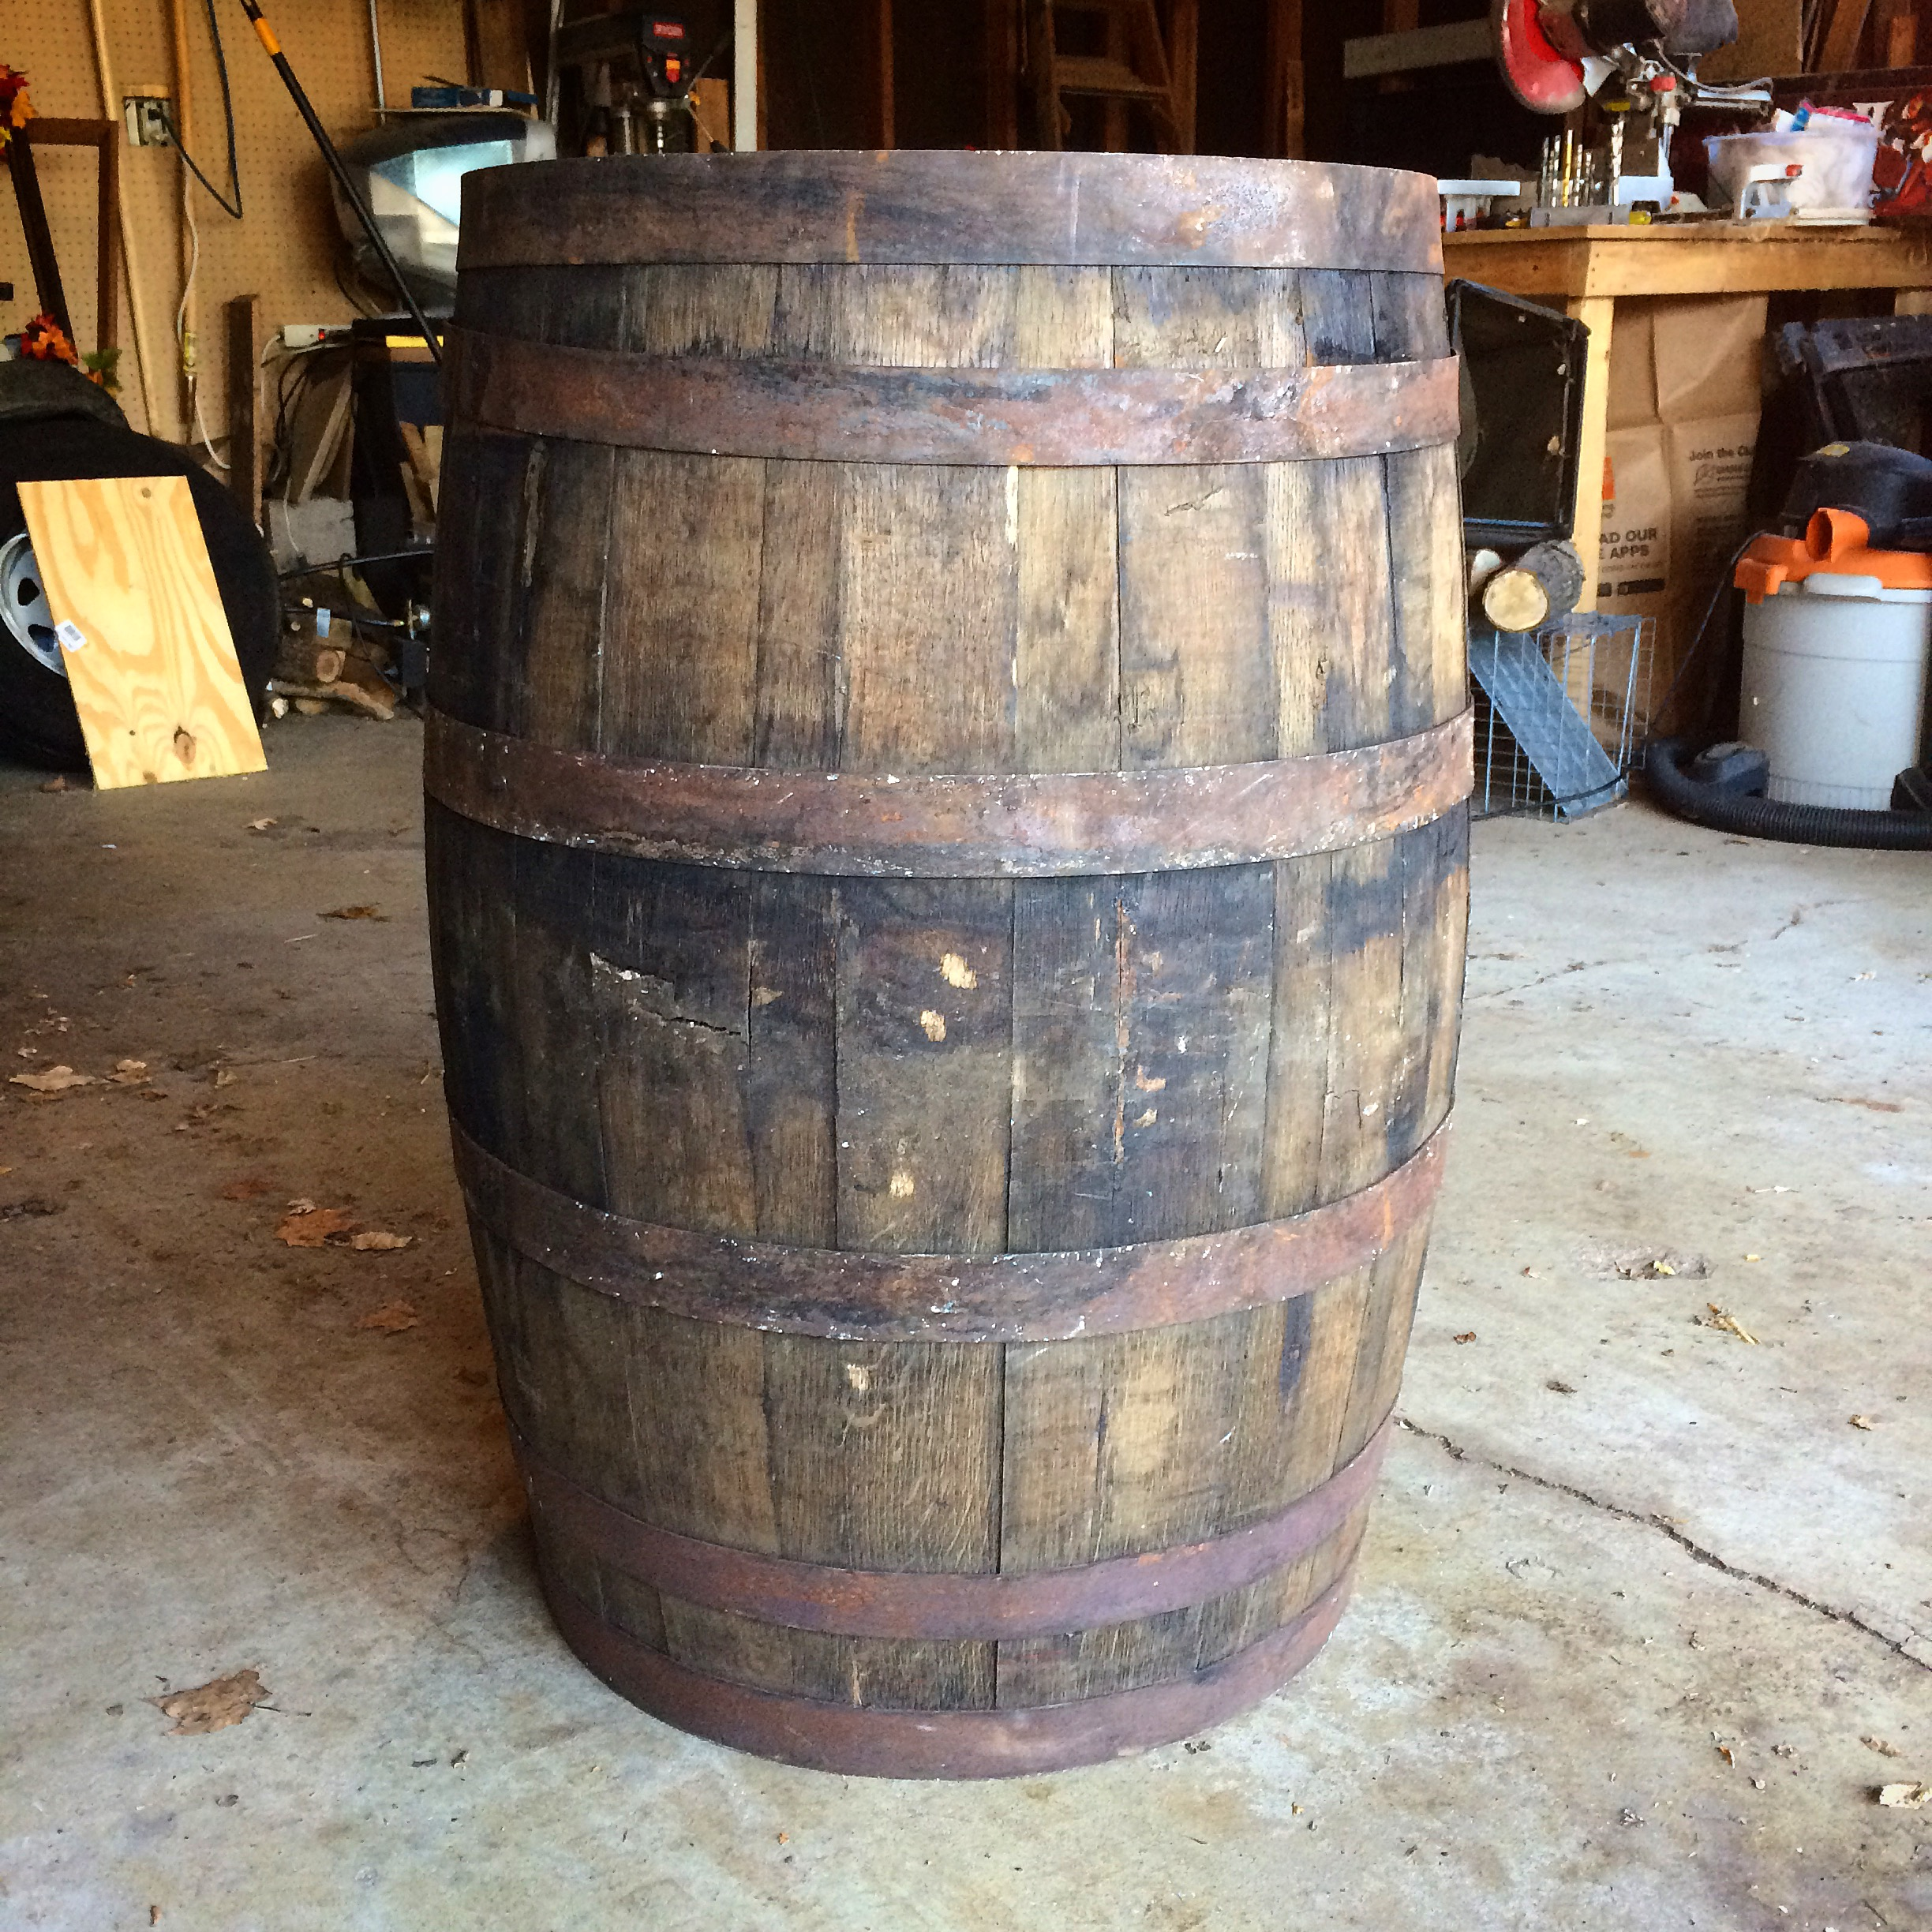 A used bourbon barrel ready to be dismantled.